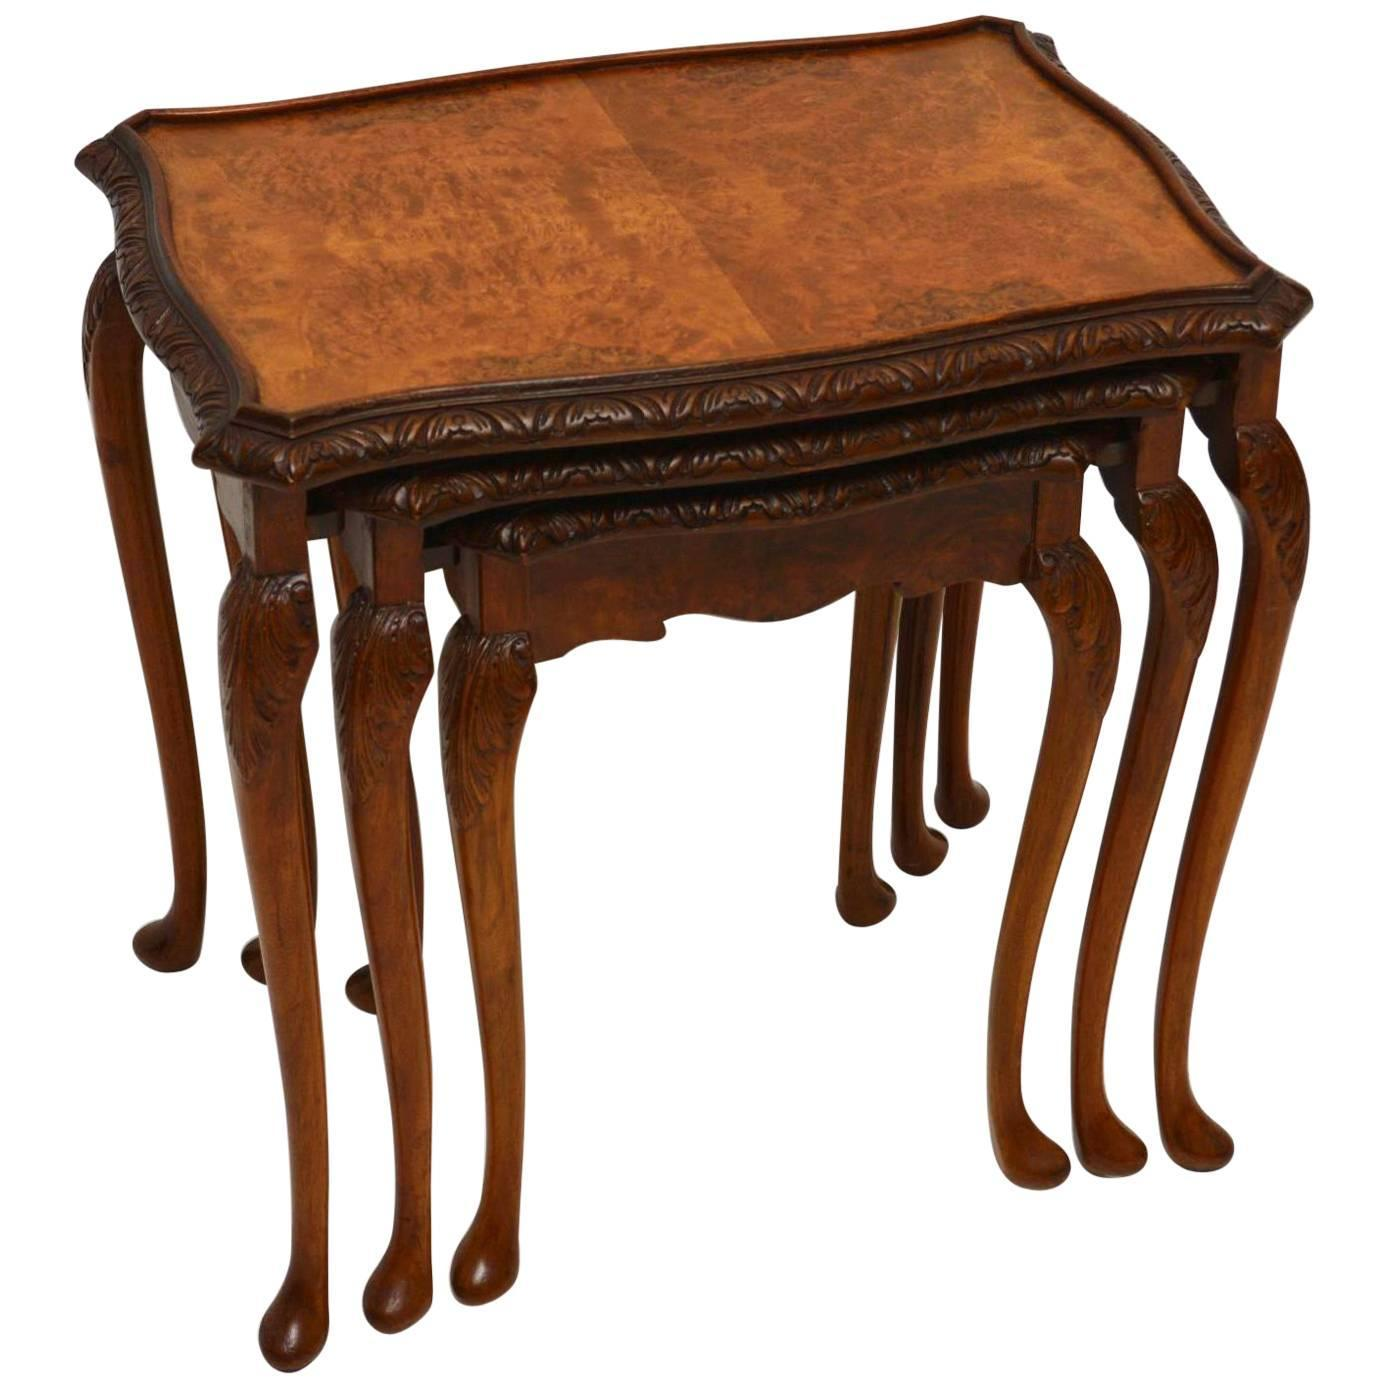 Antique Queen Anne Style Burr Walnut Nest of Tables at 1stdibs